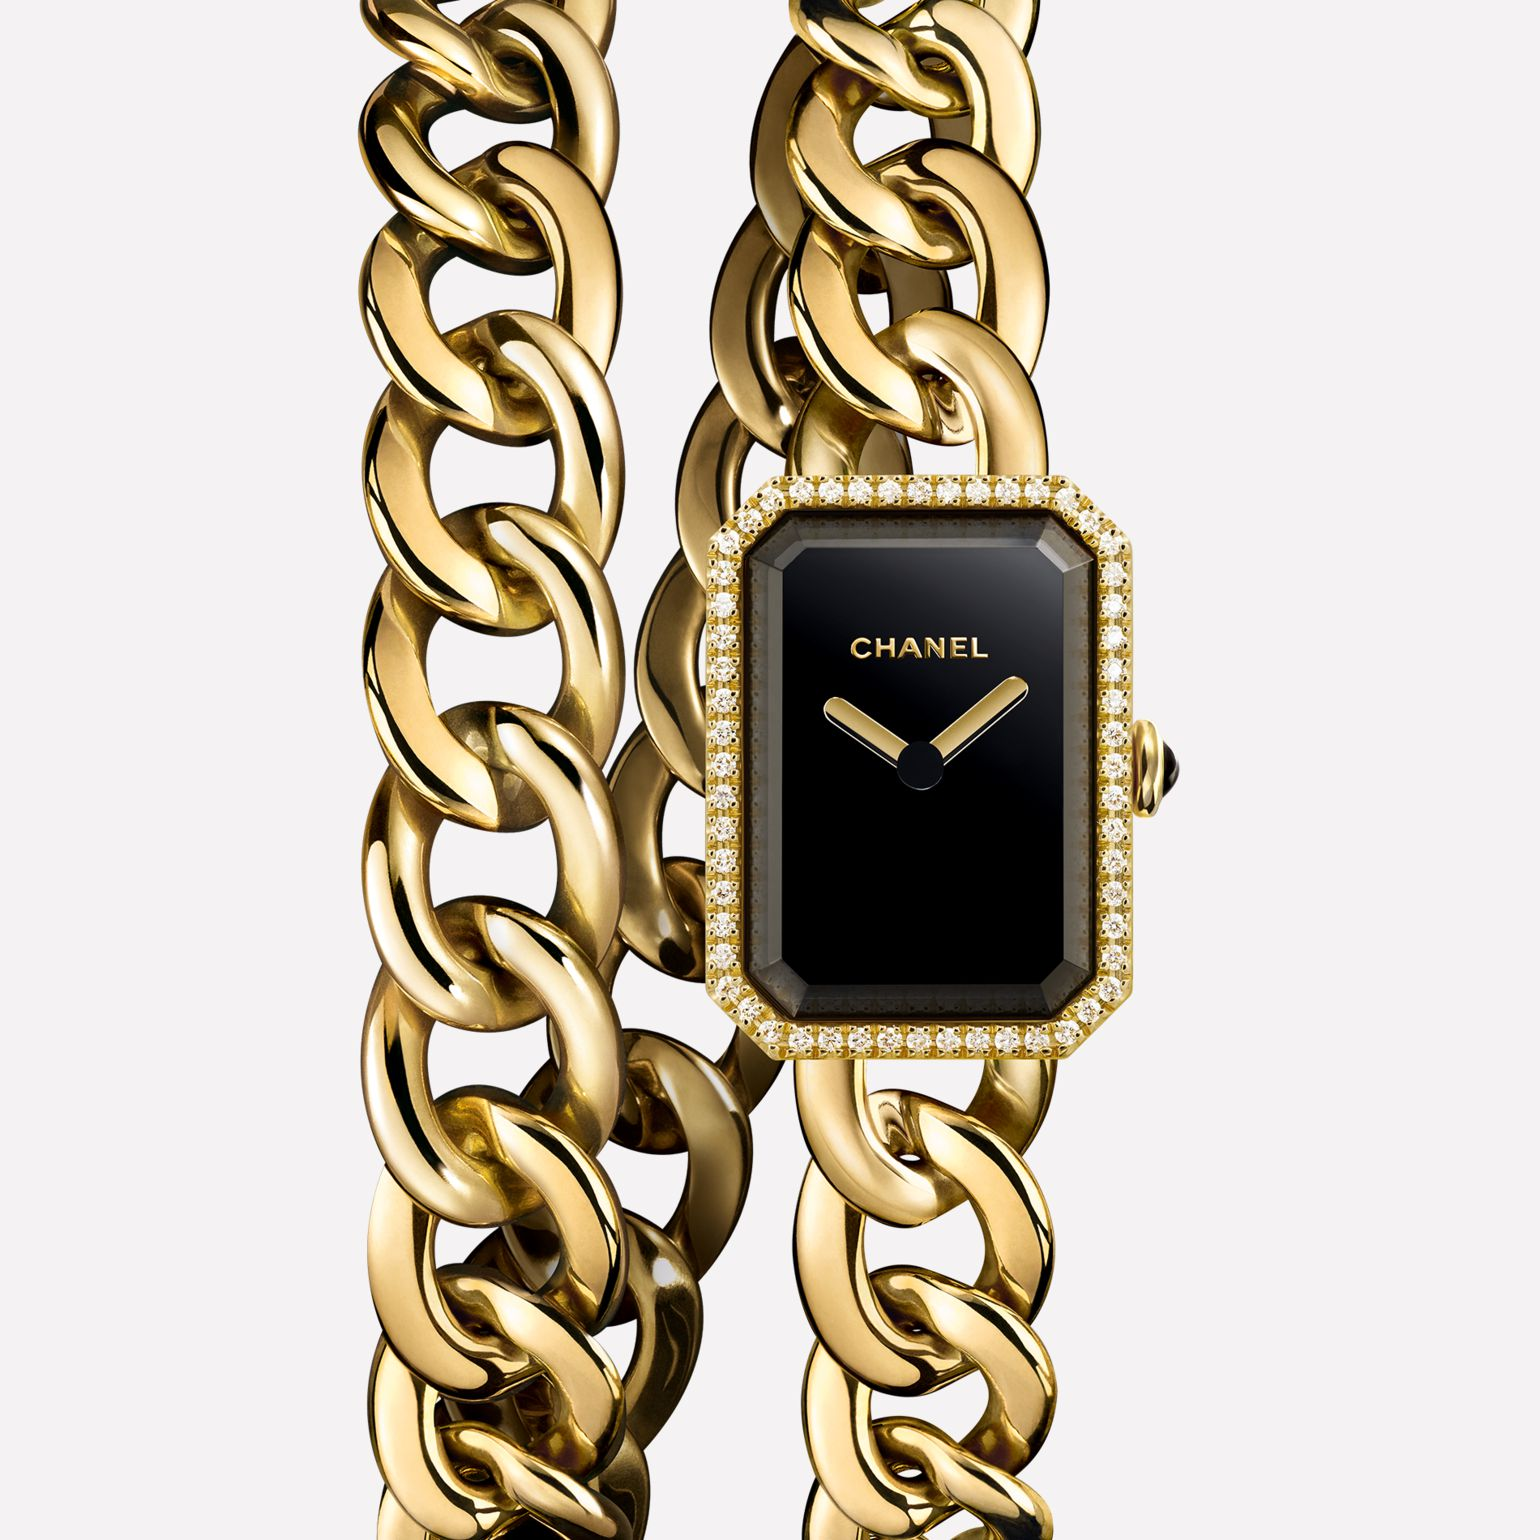 Première Chaîne Watch Yellow gold double row, diamonds, black dial